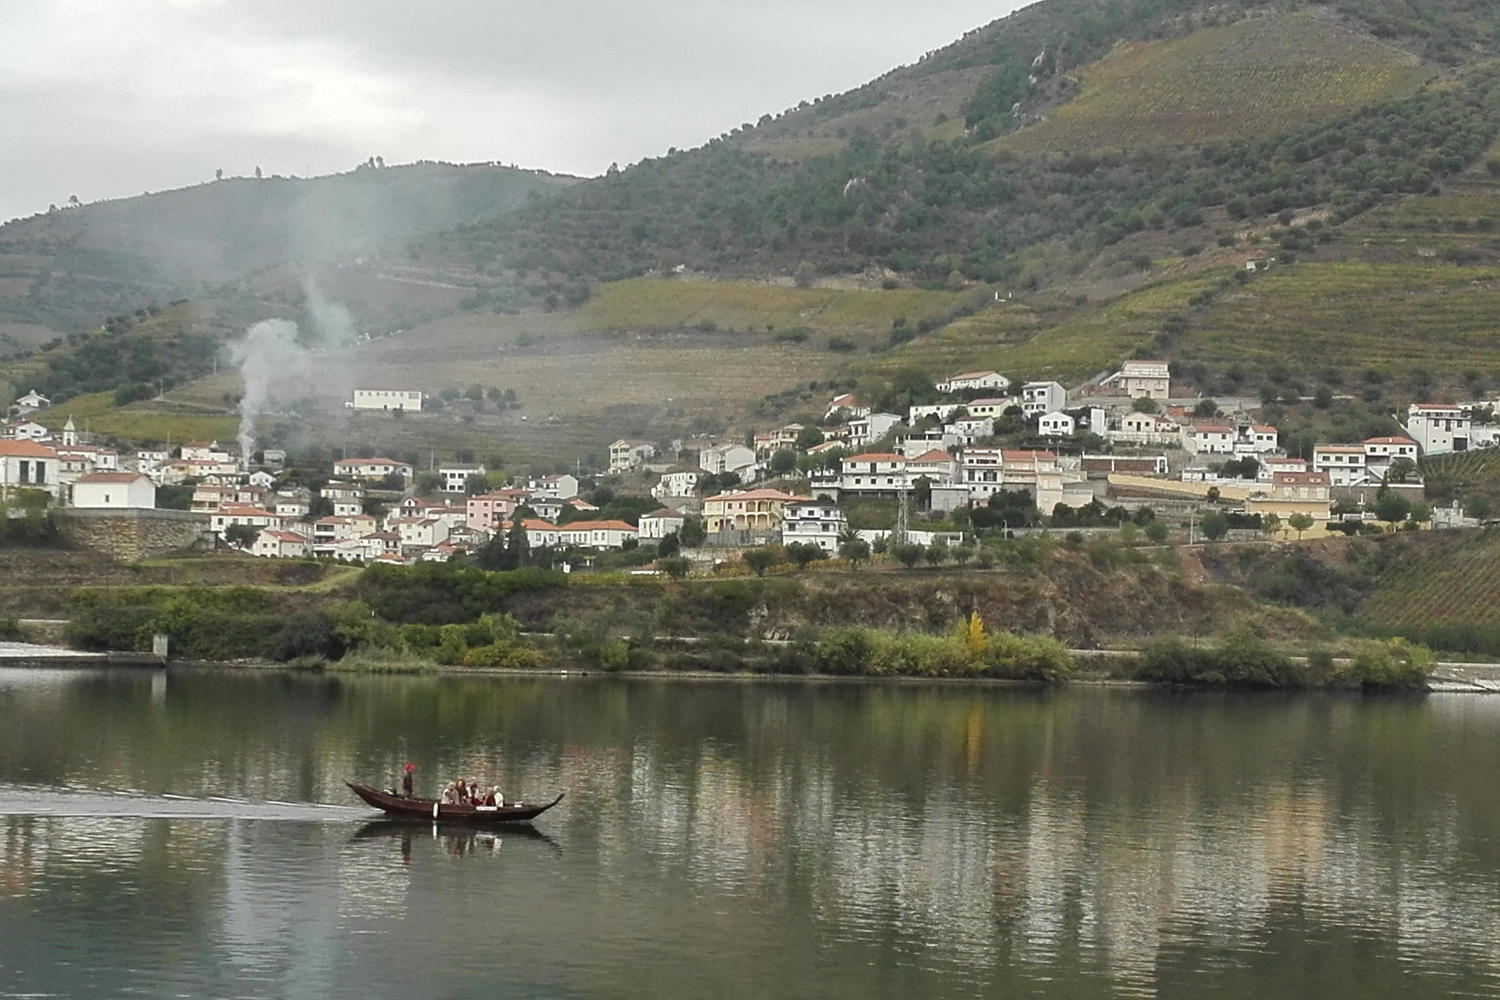 Douro river from the terrace of the DOC restaurant